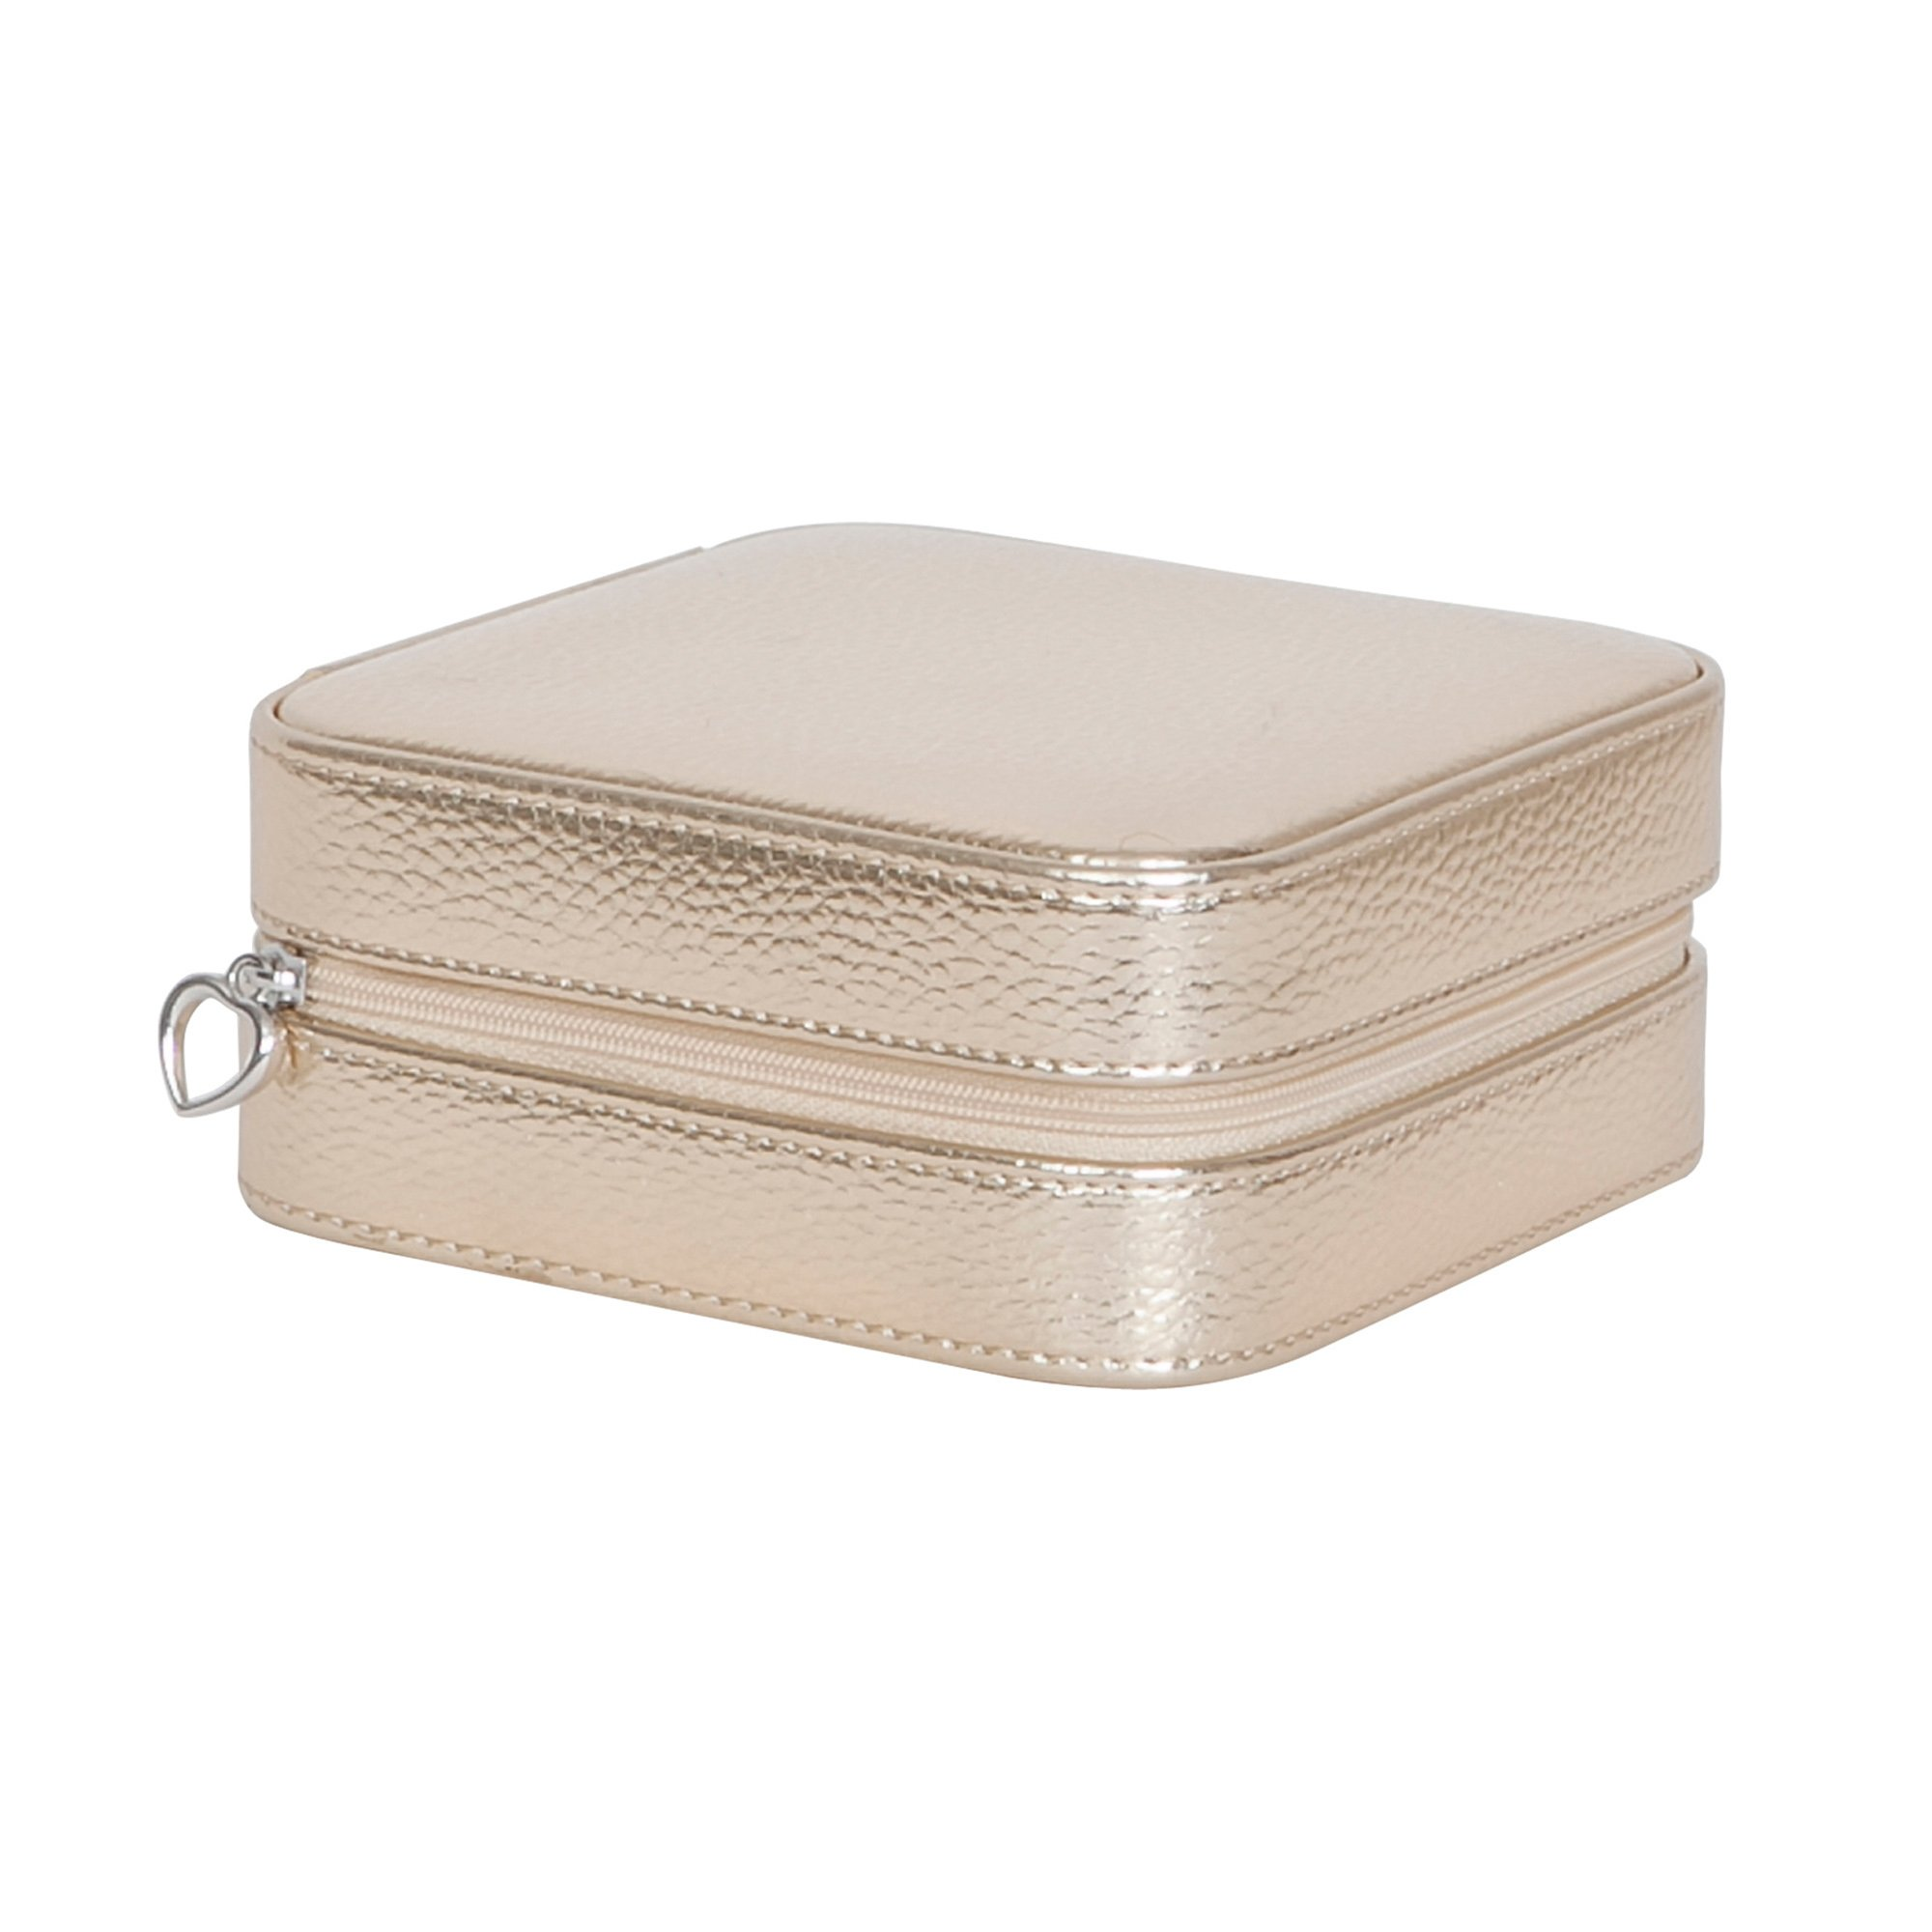 Luna Travel Metallic Faux Leather Jewelry Case Color Gold